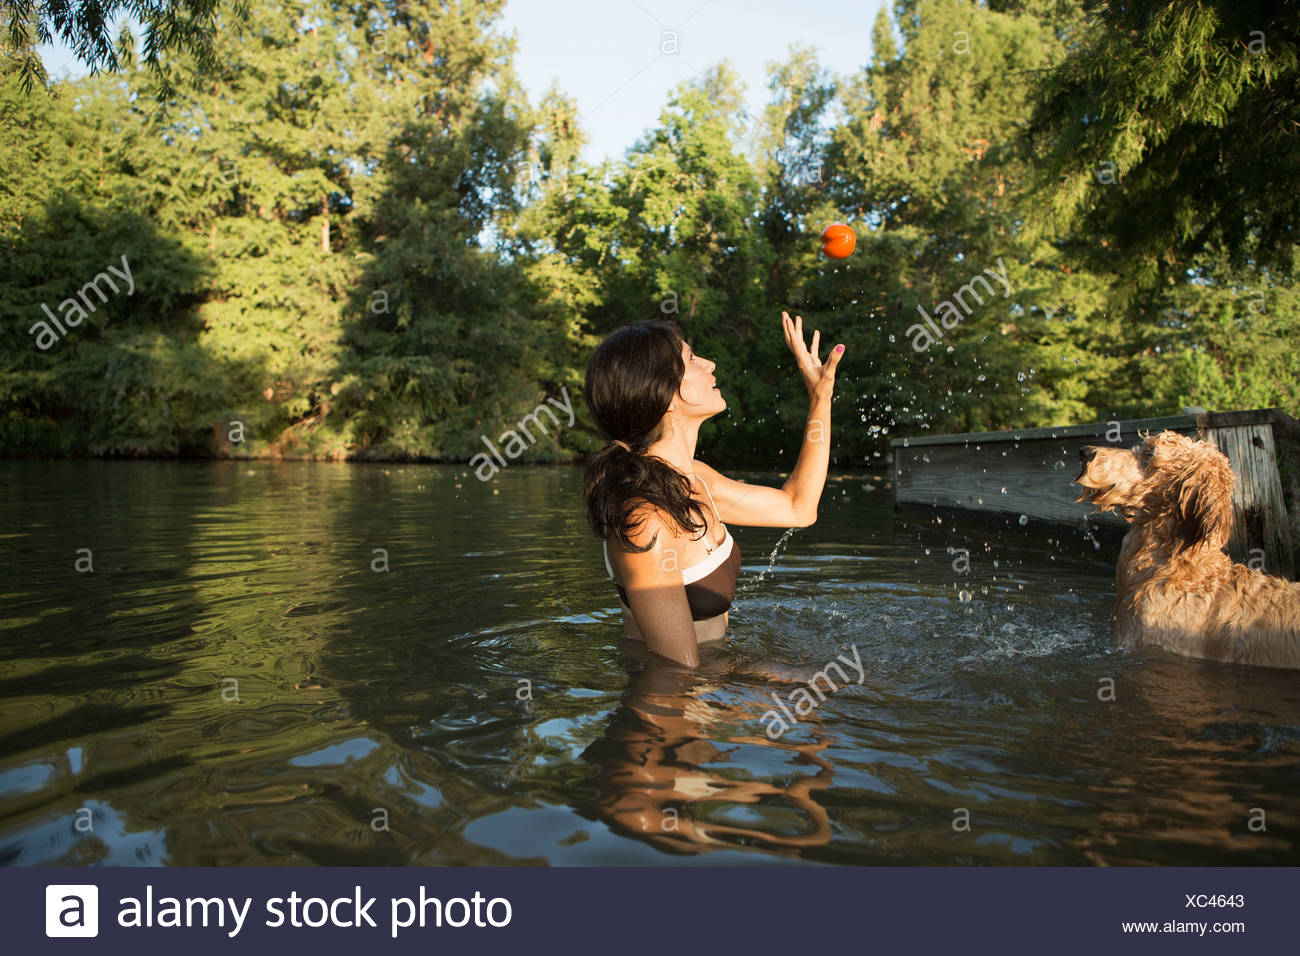 A woman swimming with her two dogs in a lake. Throwing the ball in play. - Stock Image